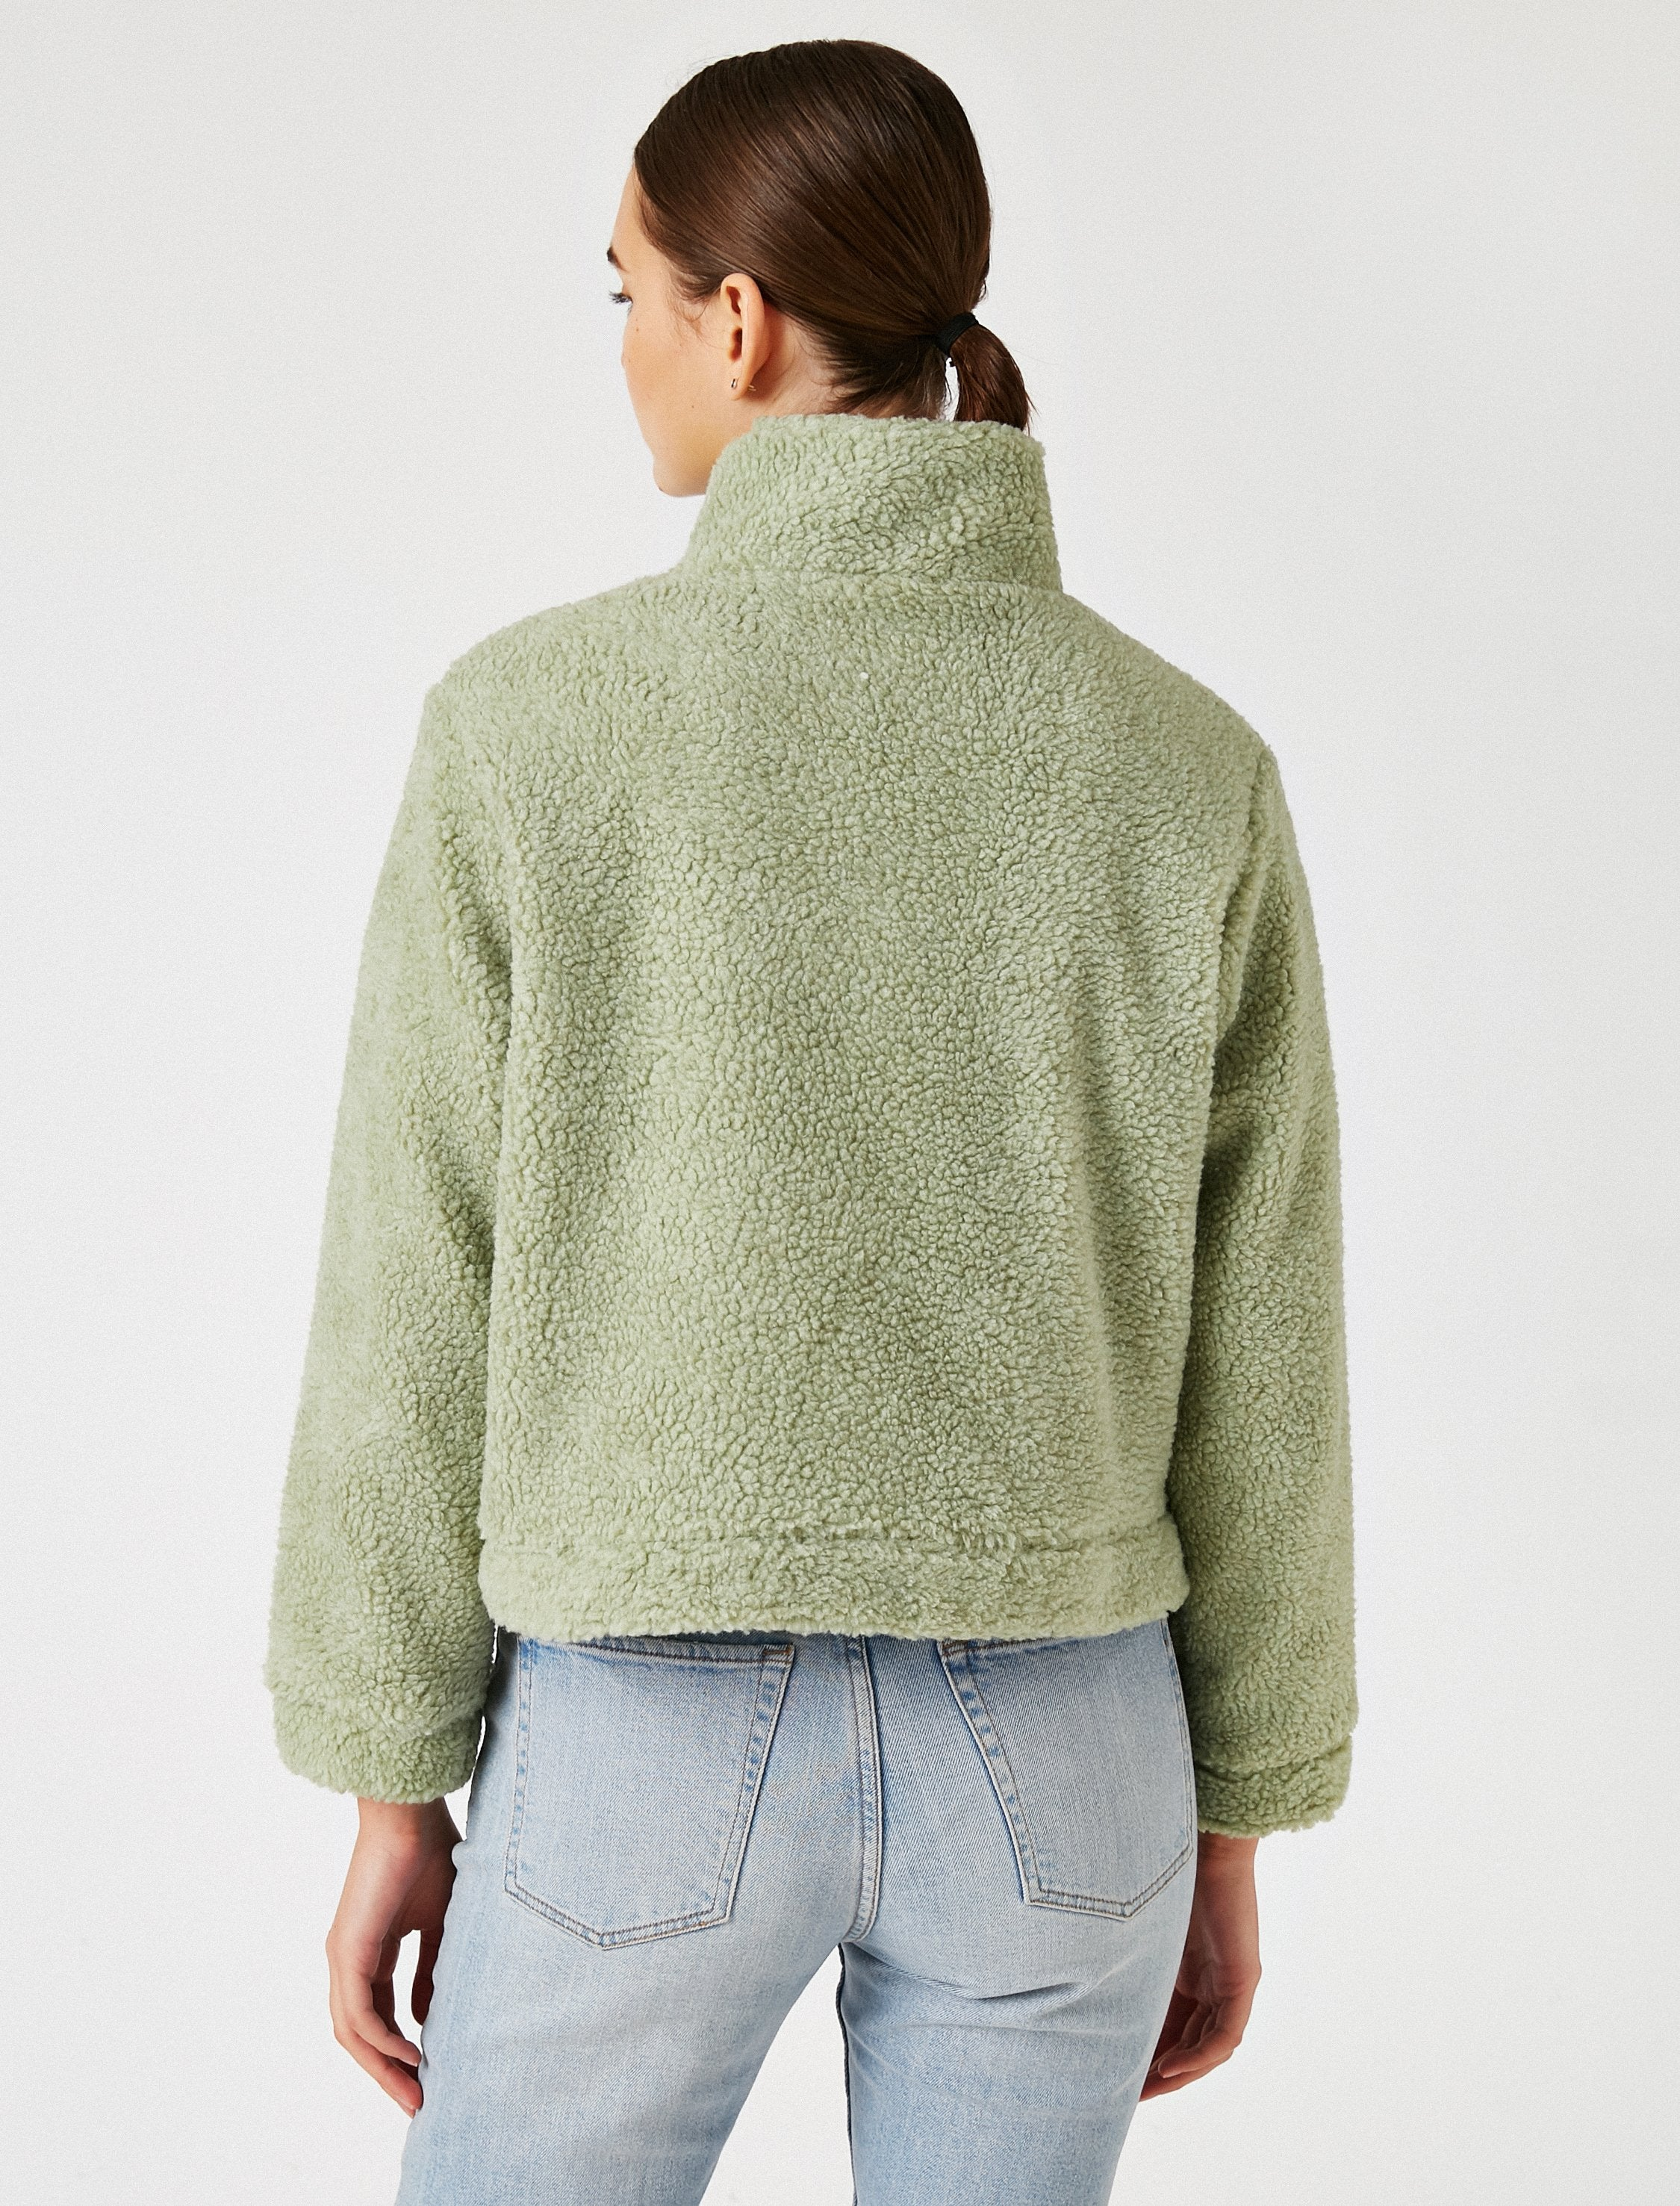 Mock Neck Sherpa Jacket in Teal Green